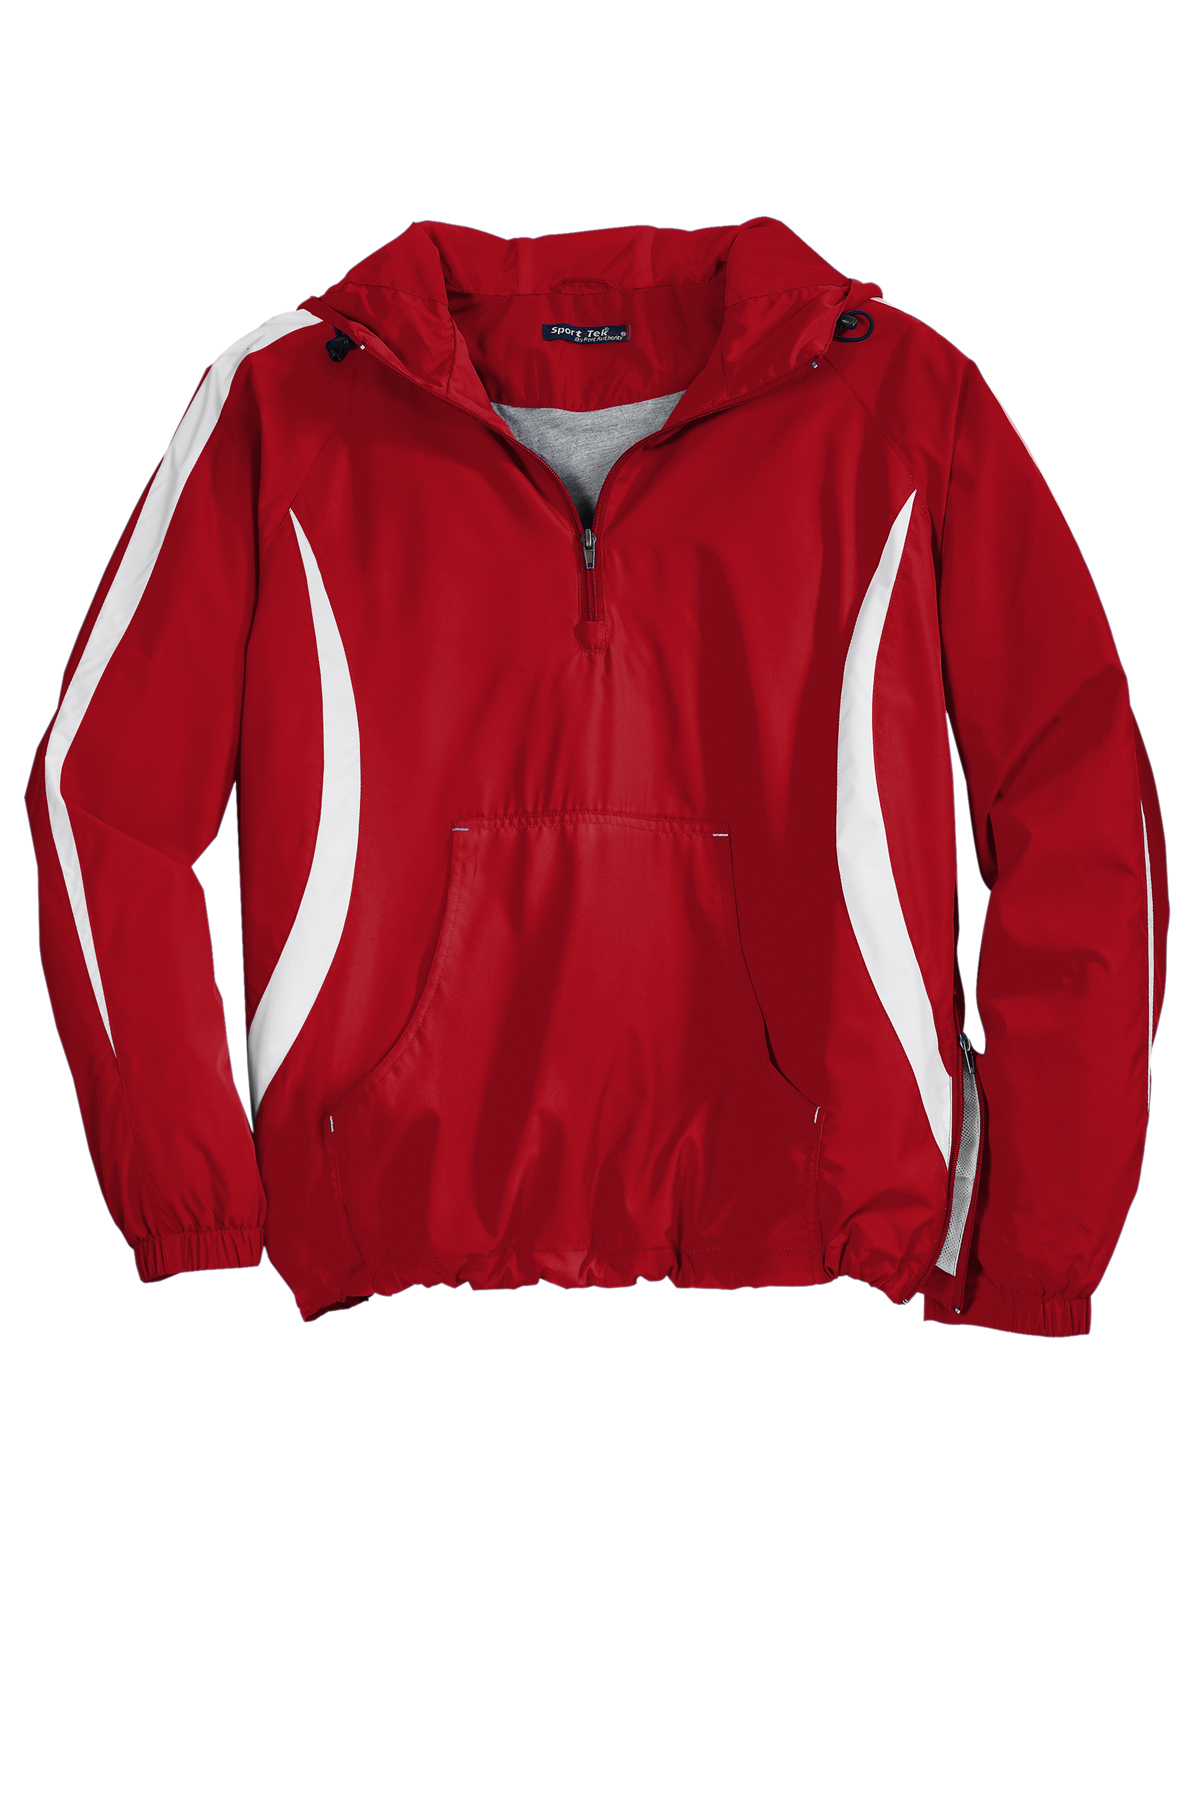 Navy//Red in size S Details about  /New Mens Errea Maxim Zip Neck Top J33-63